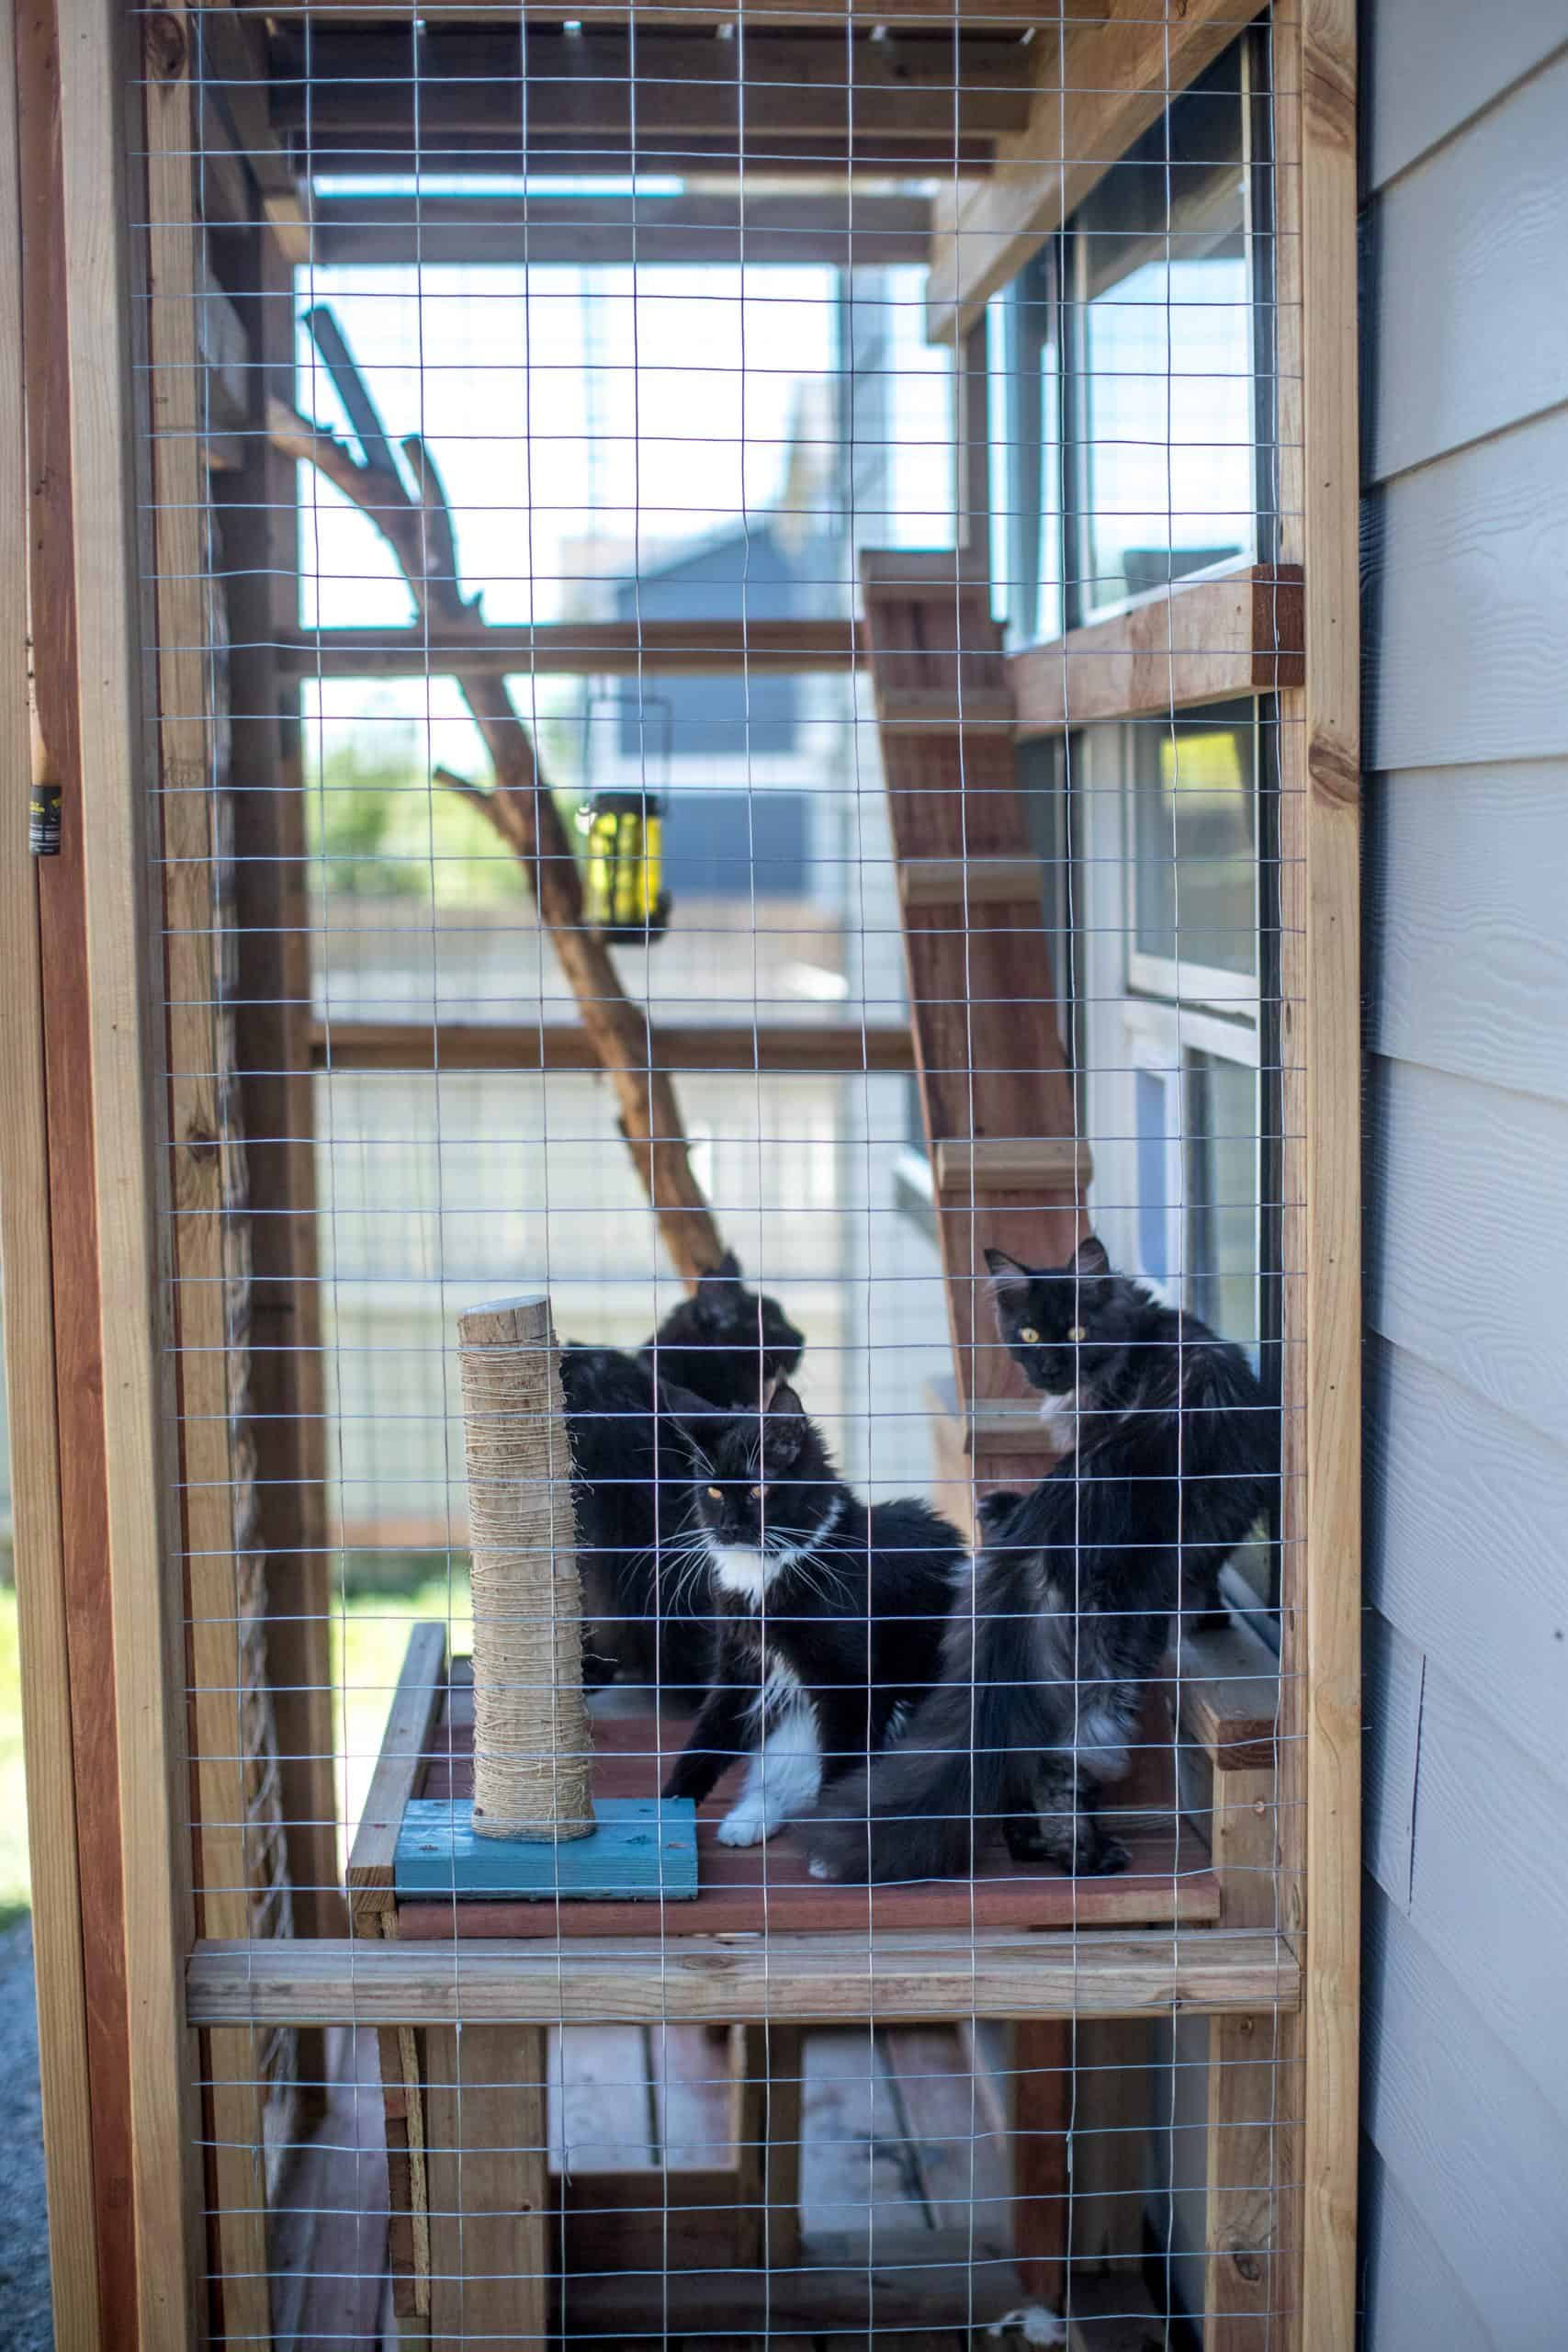 catio for mainecoons